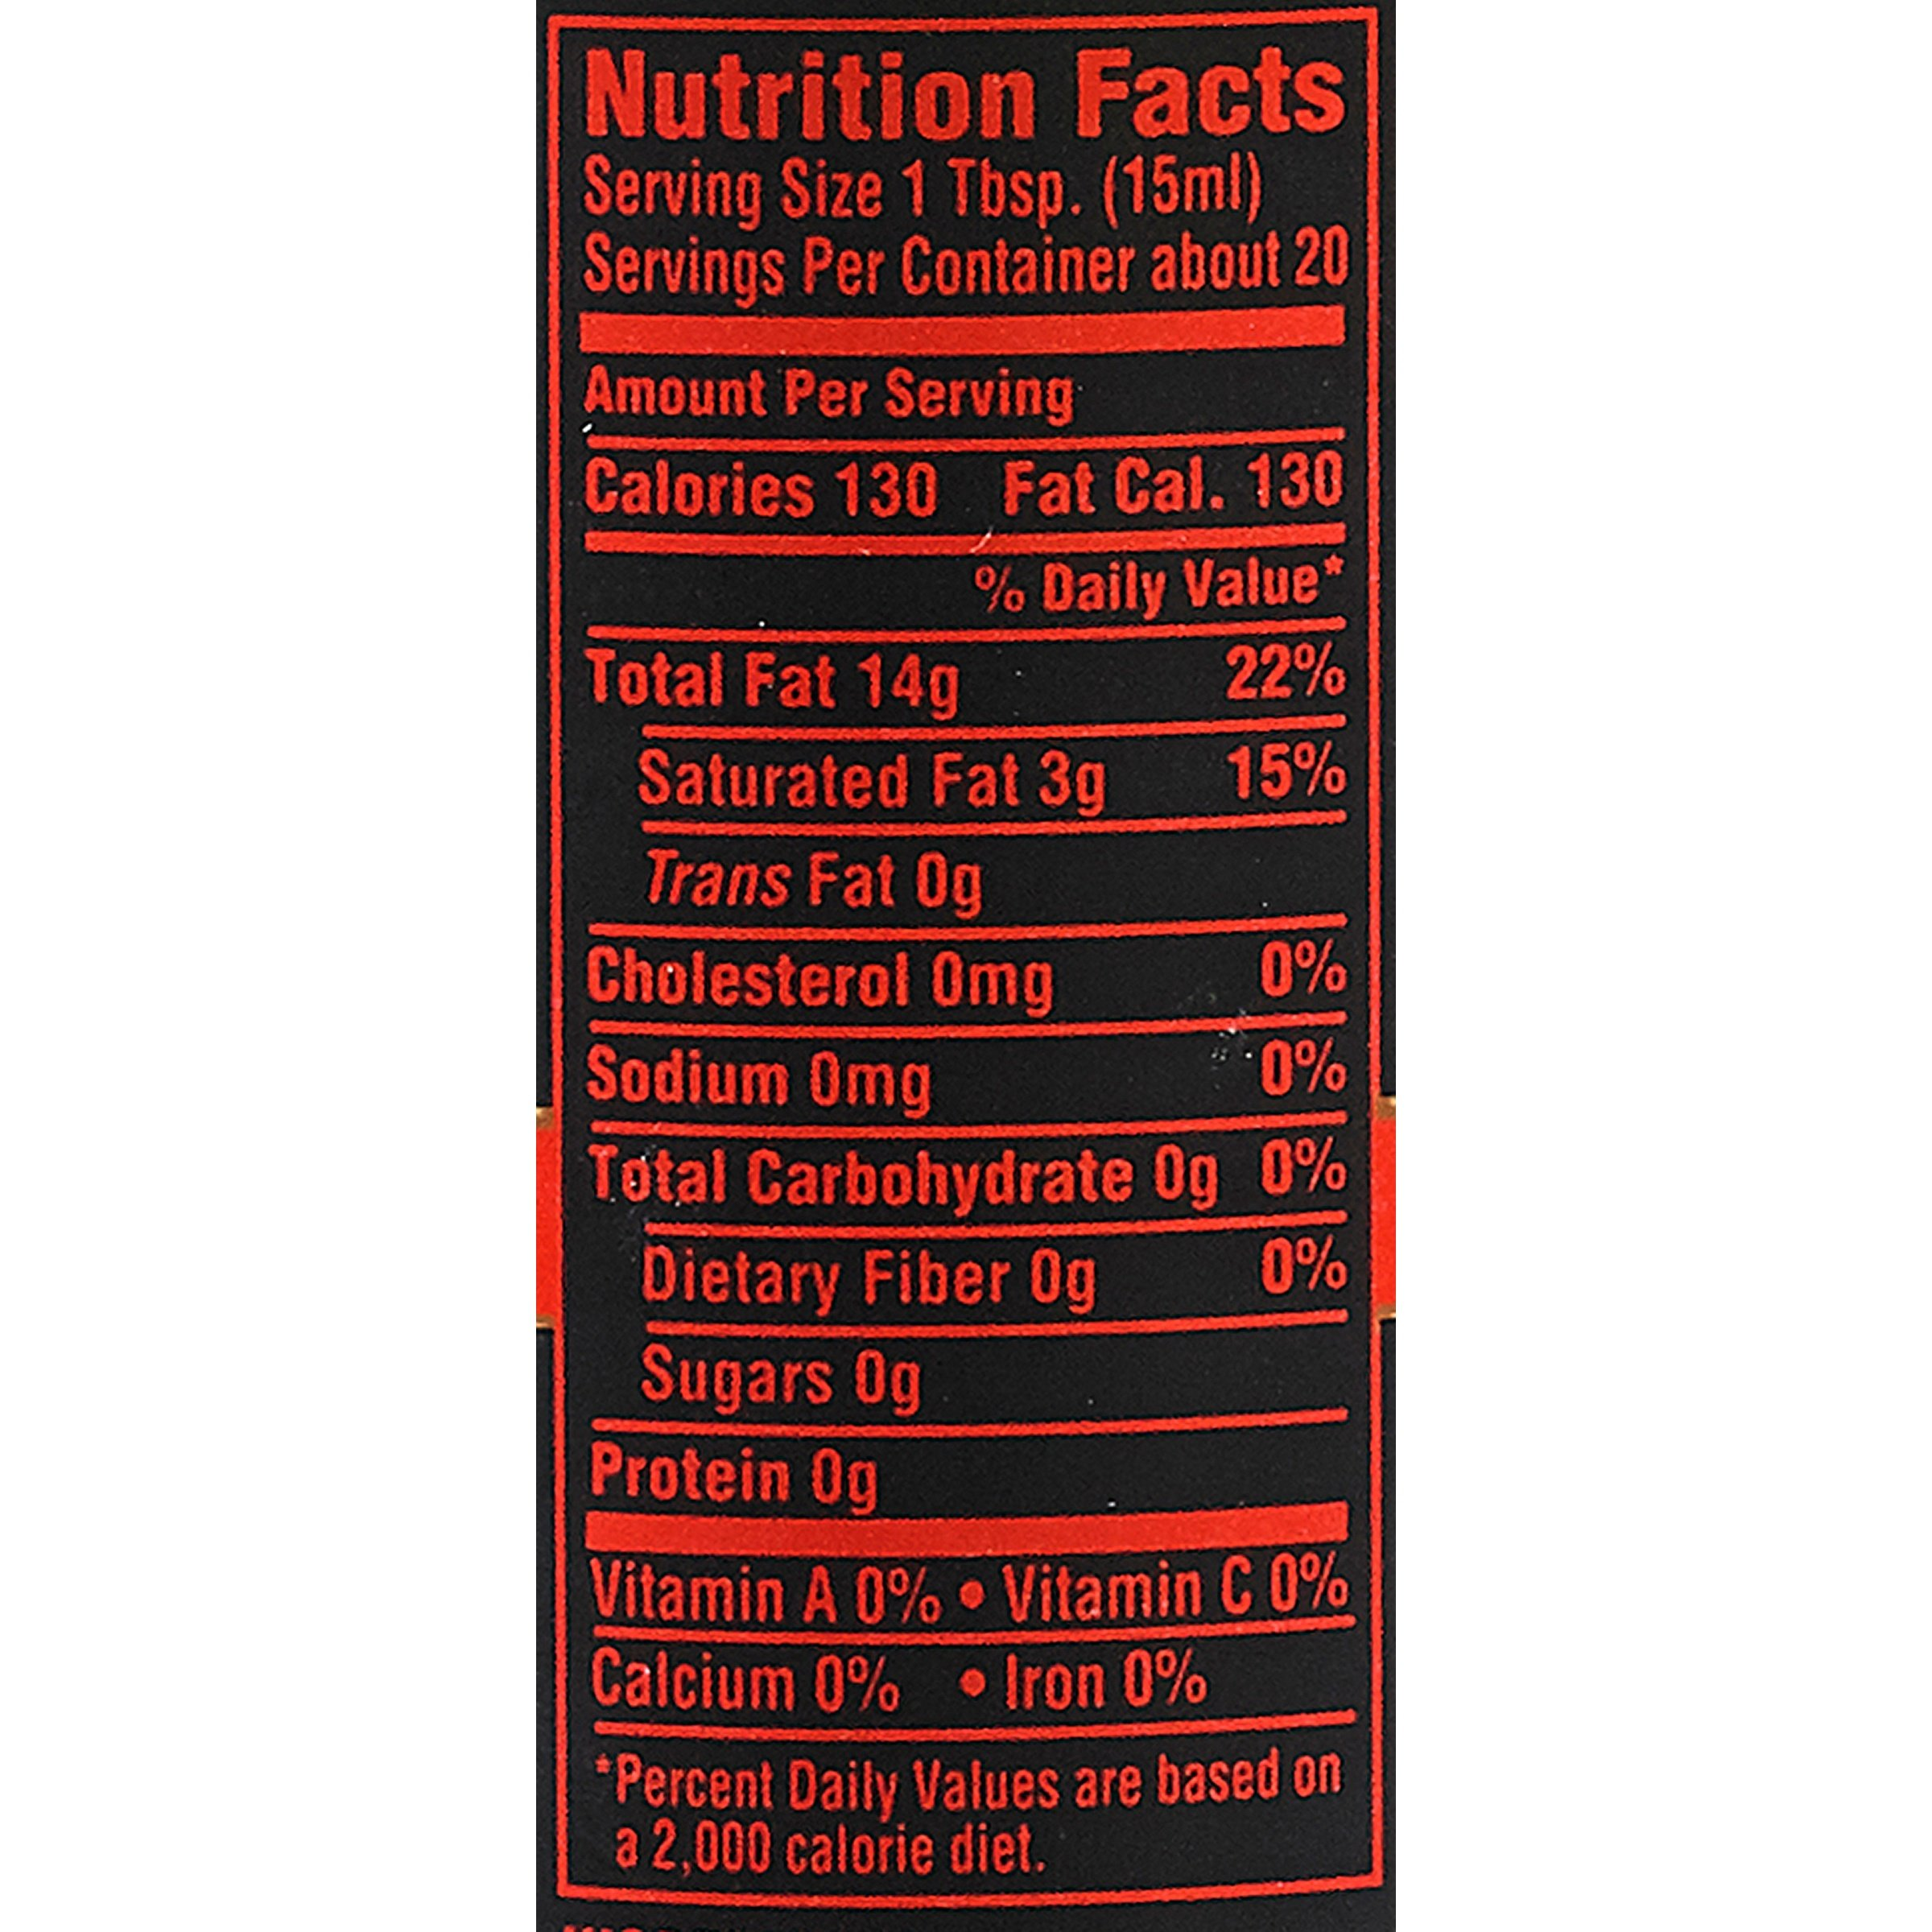 PACK OF 12 - House of Tsang Stir-Fry Cooking Oil, 10 fl oz by _House of Tsang (Image #5)